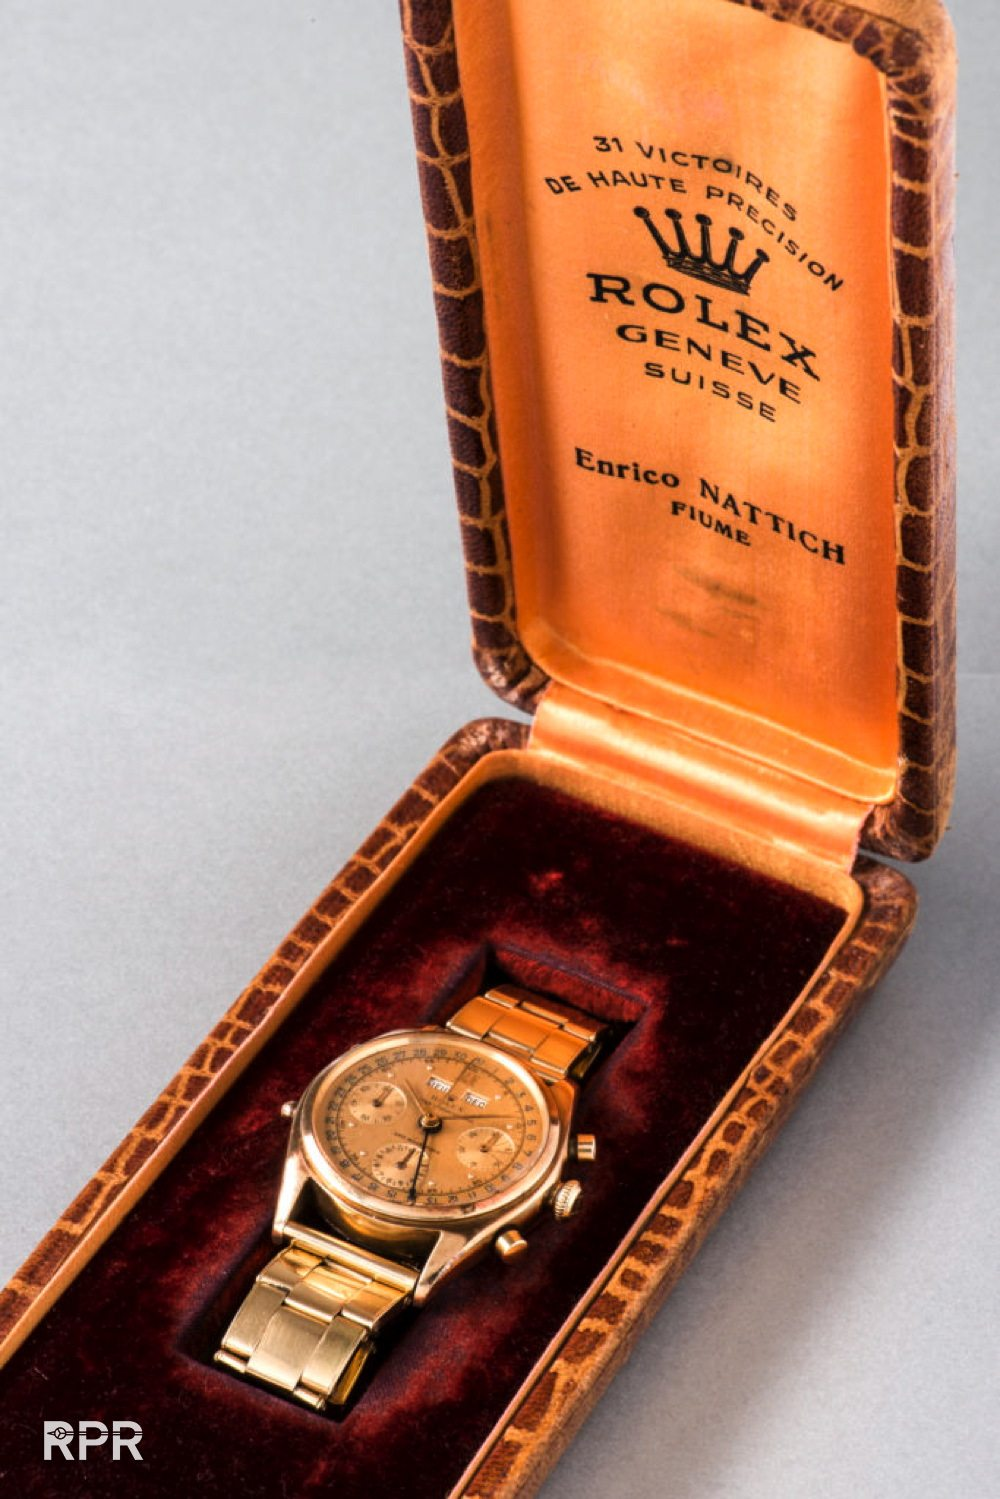 rpr_rolex4767killy2-683x1024